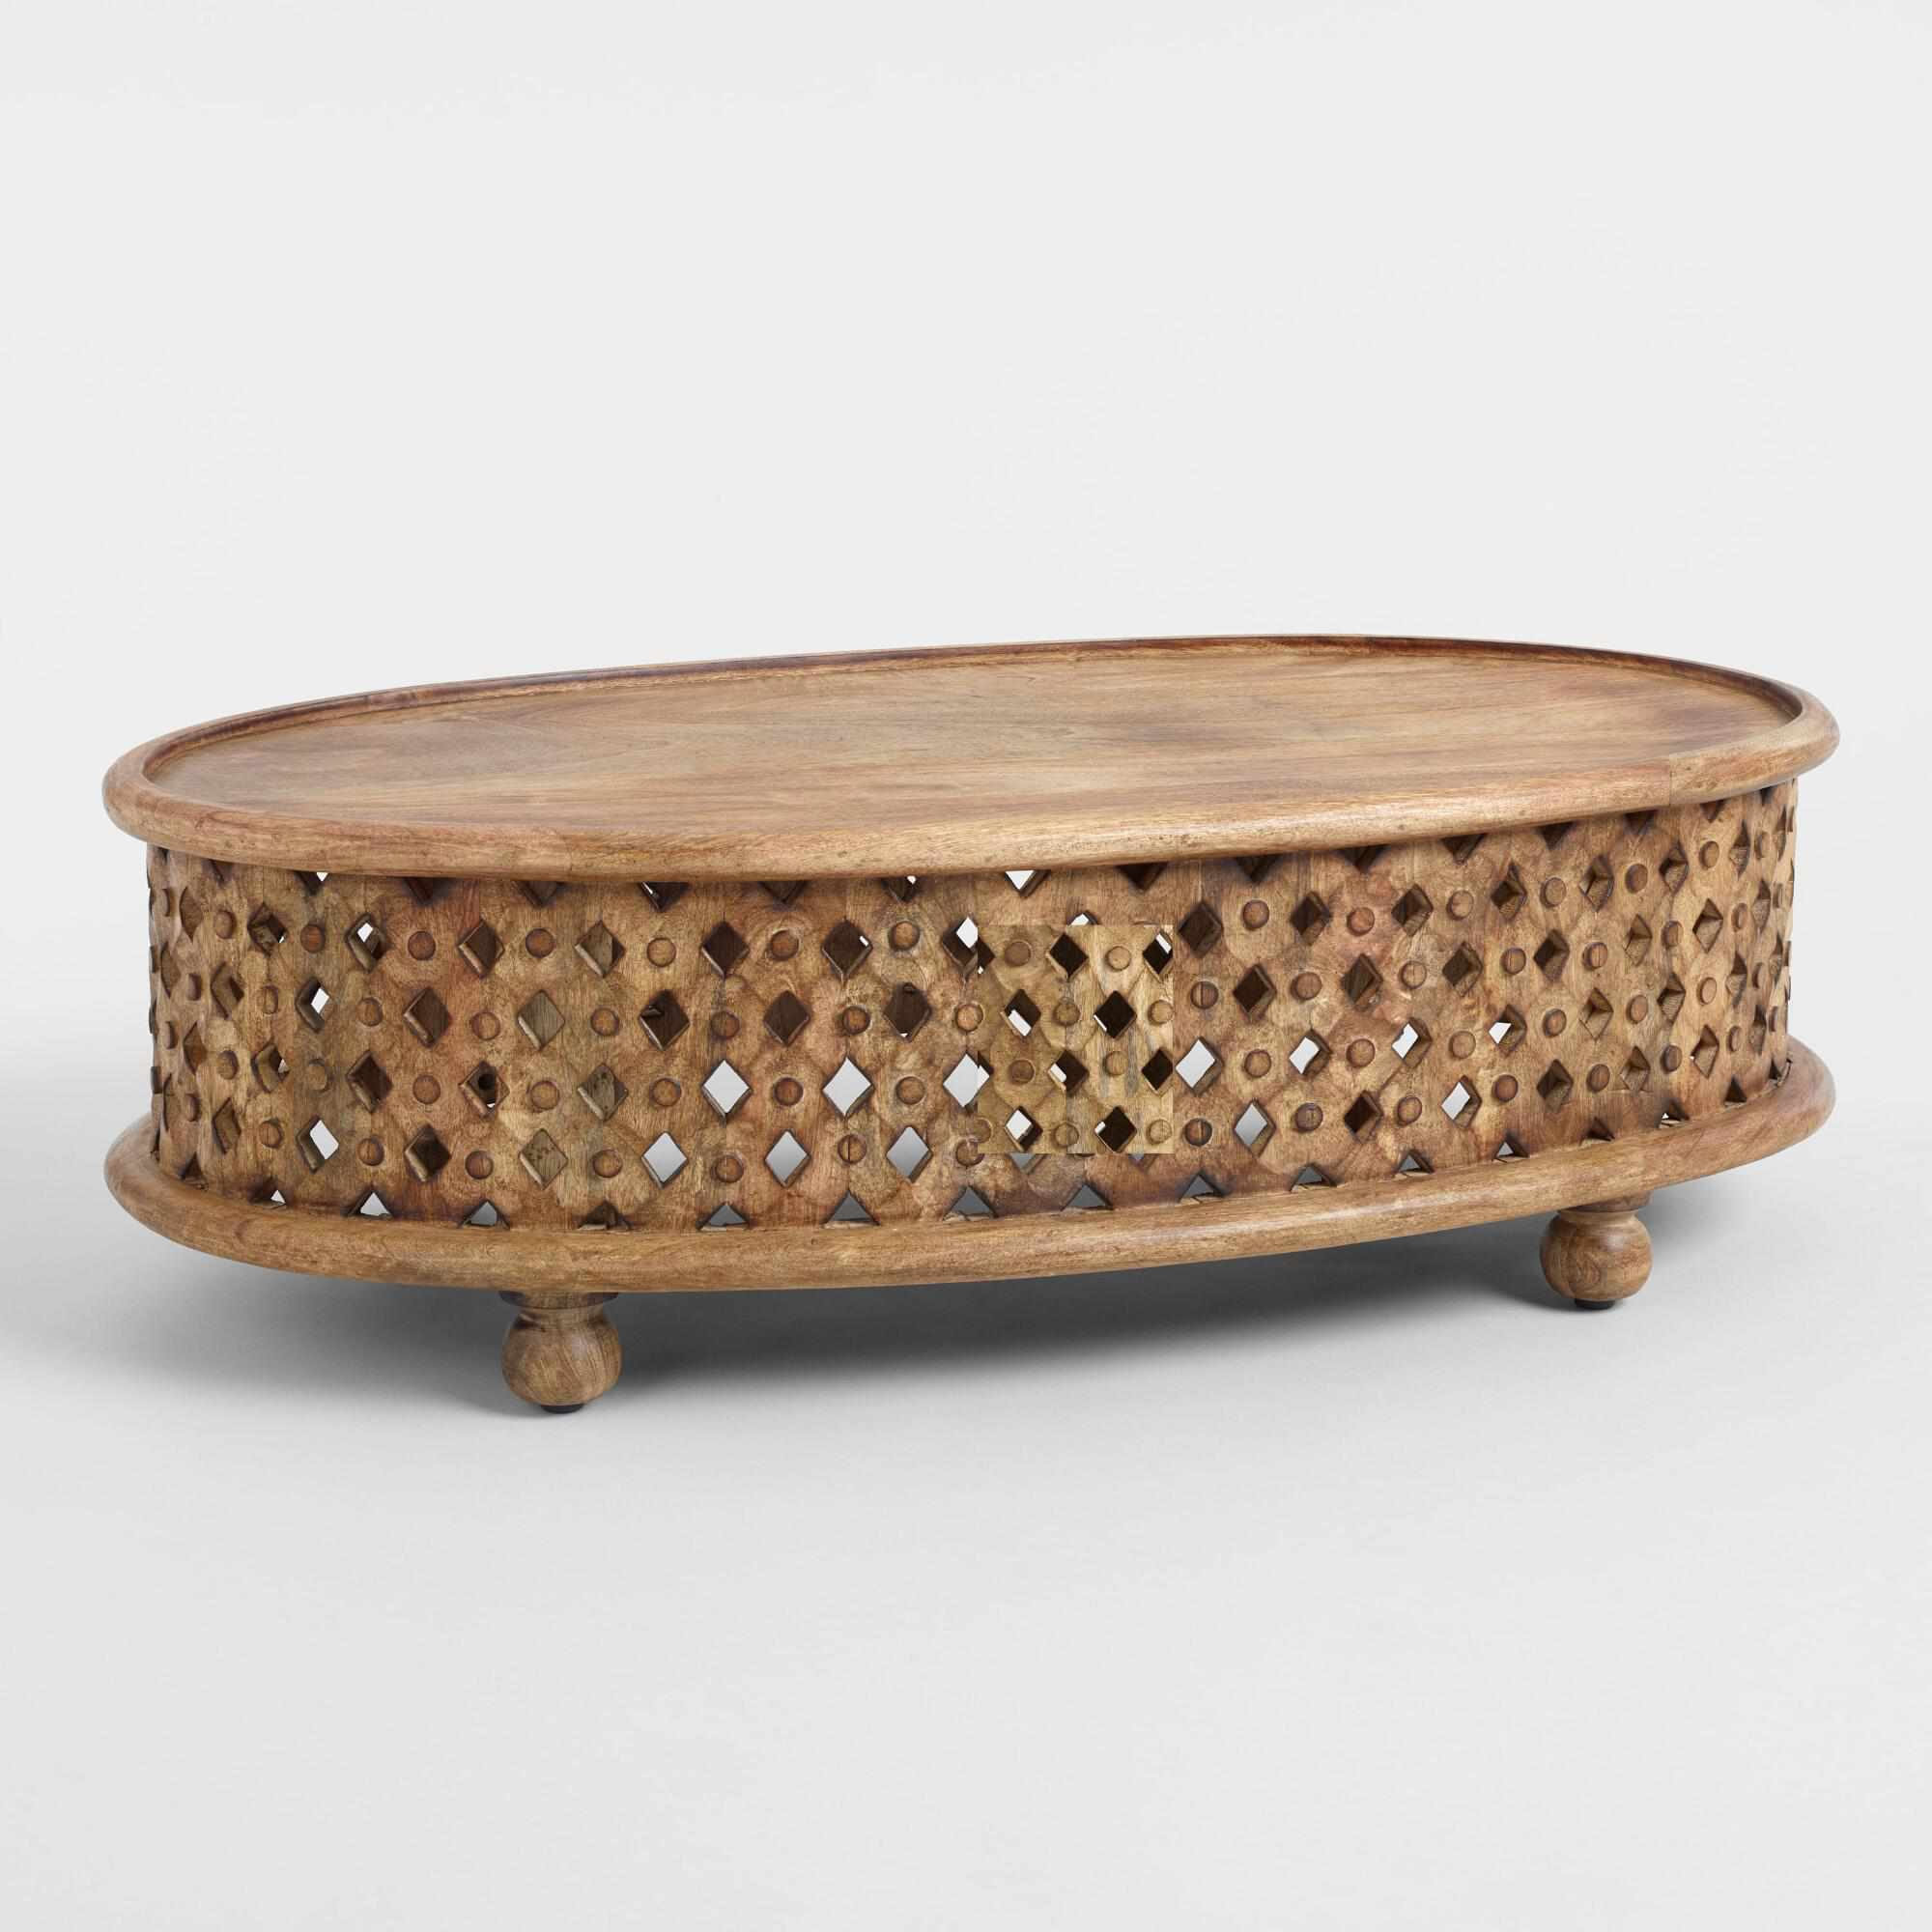 An oval carved-wood coffee table with bun feet.